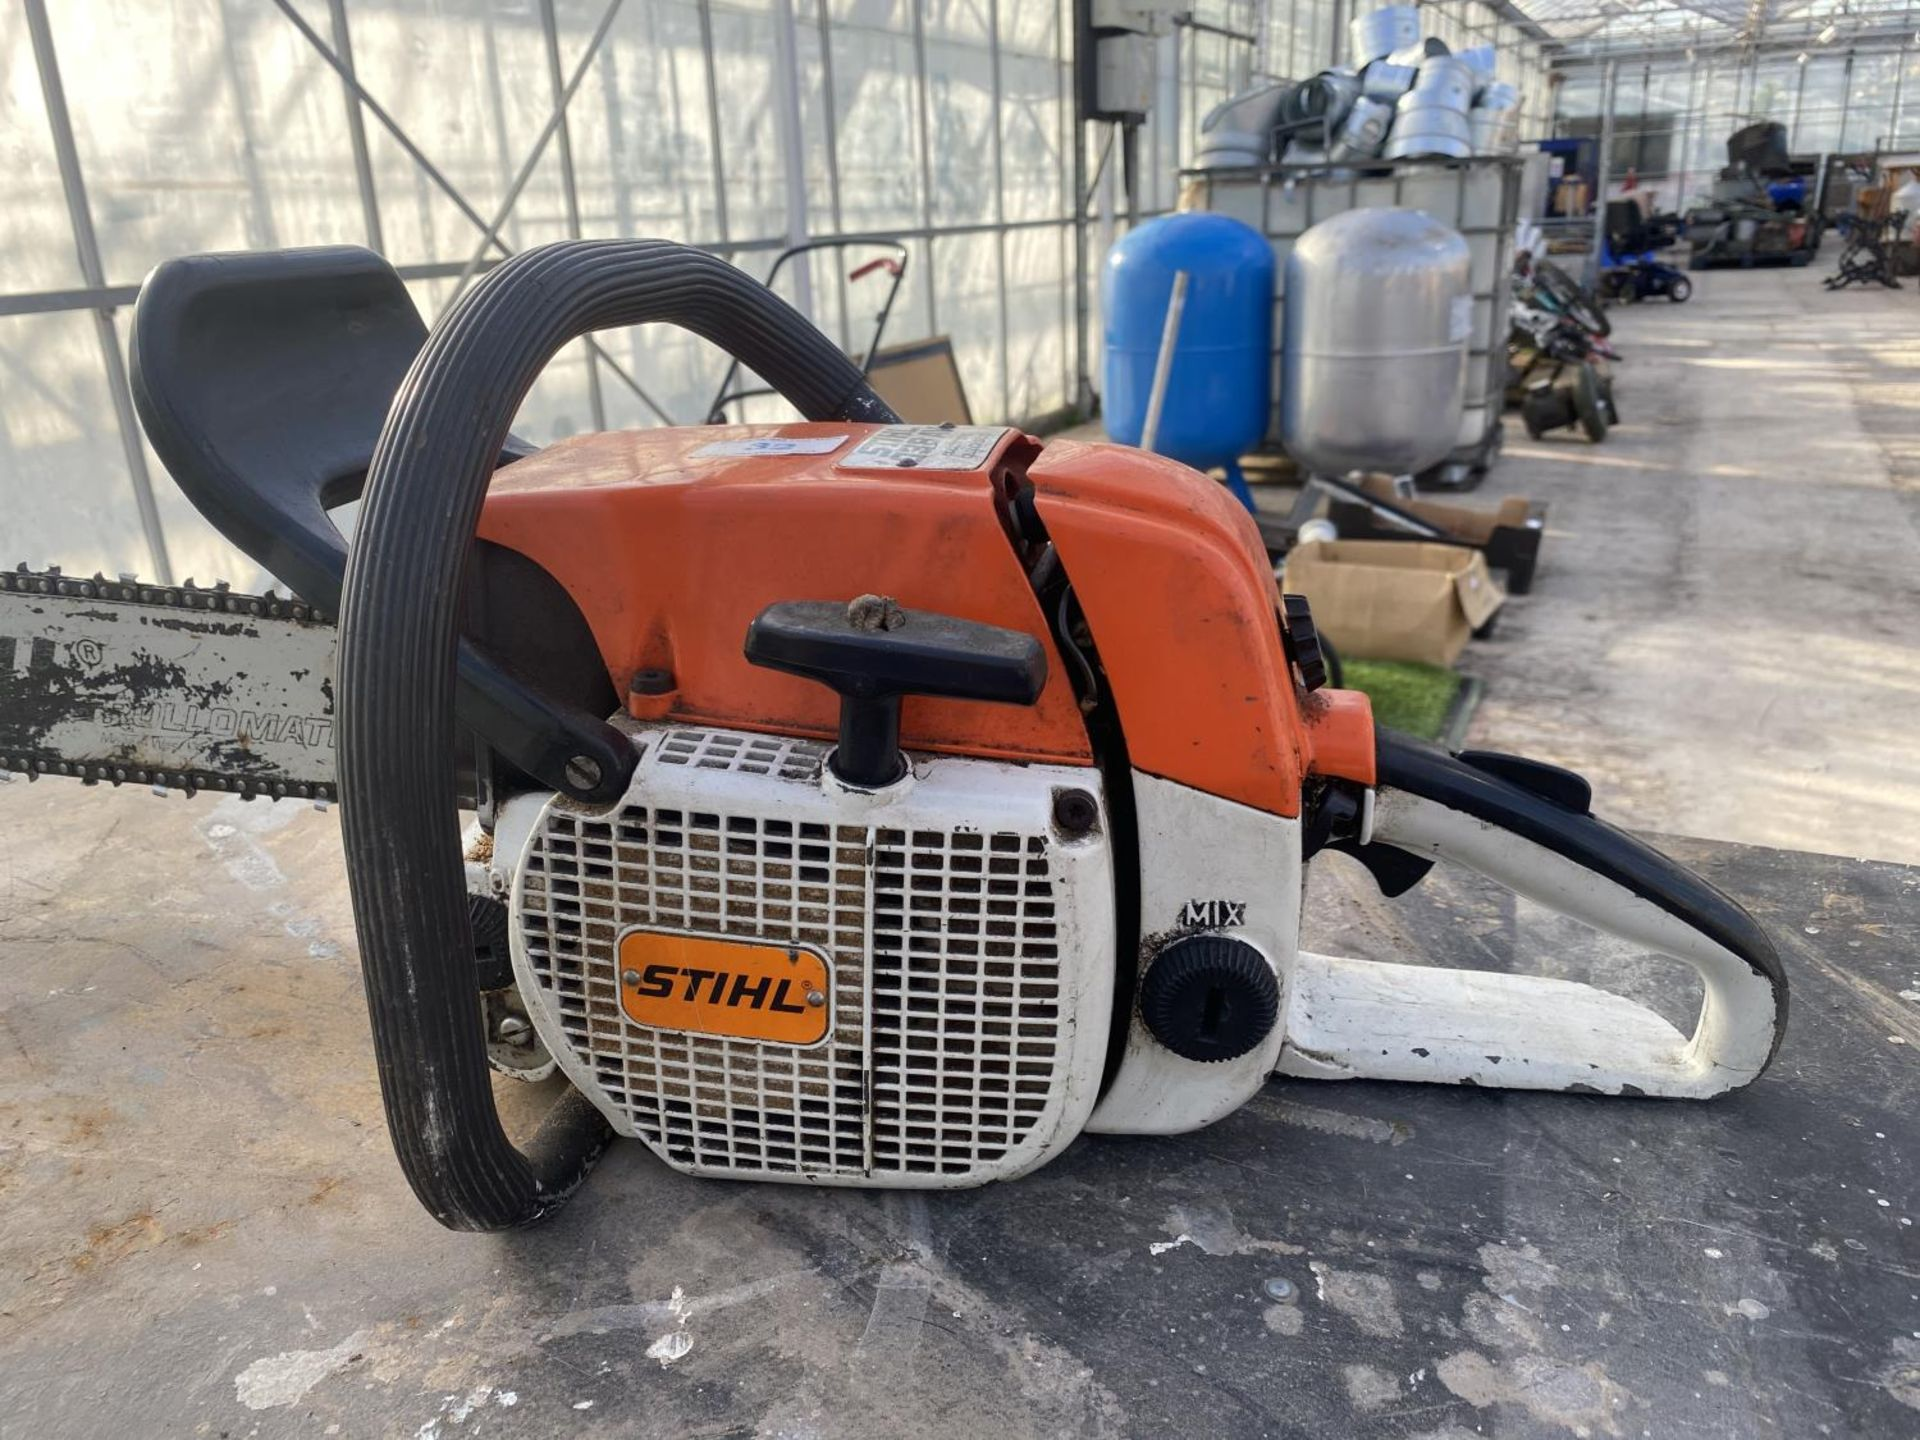 A STHIL 038 AV ELECTRONIC QUICKSTOP CHAIN SAW NO VAT - Image 4 of 5